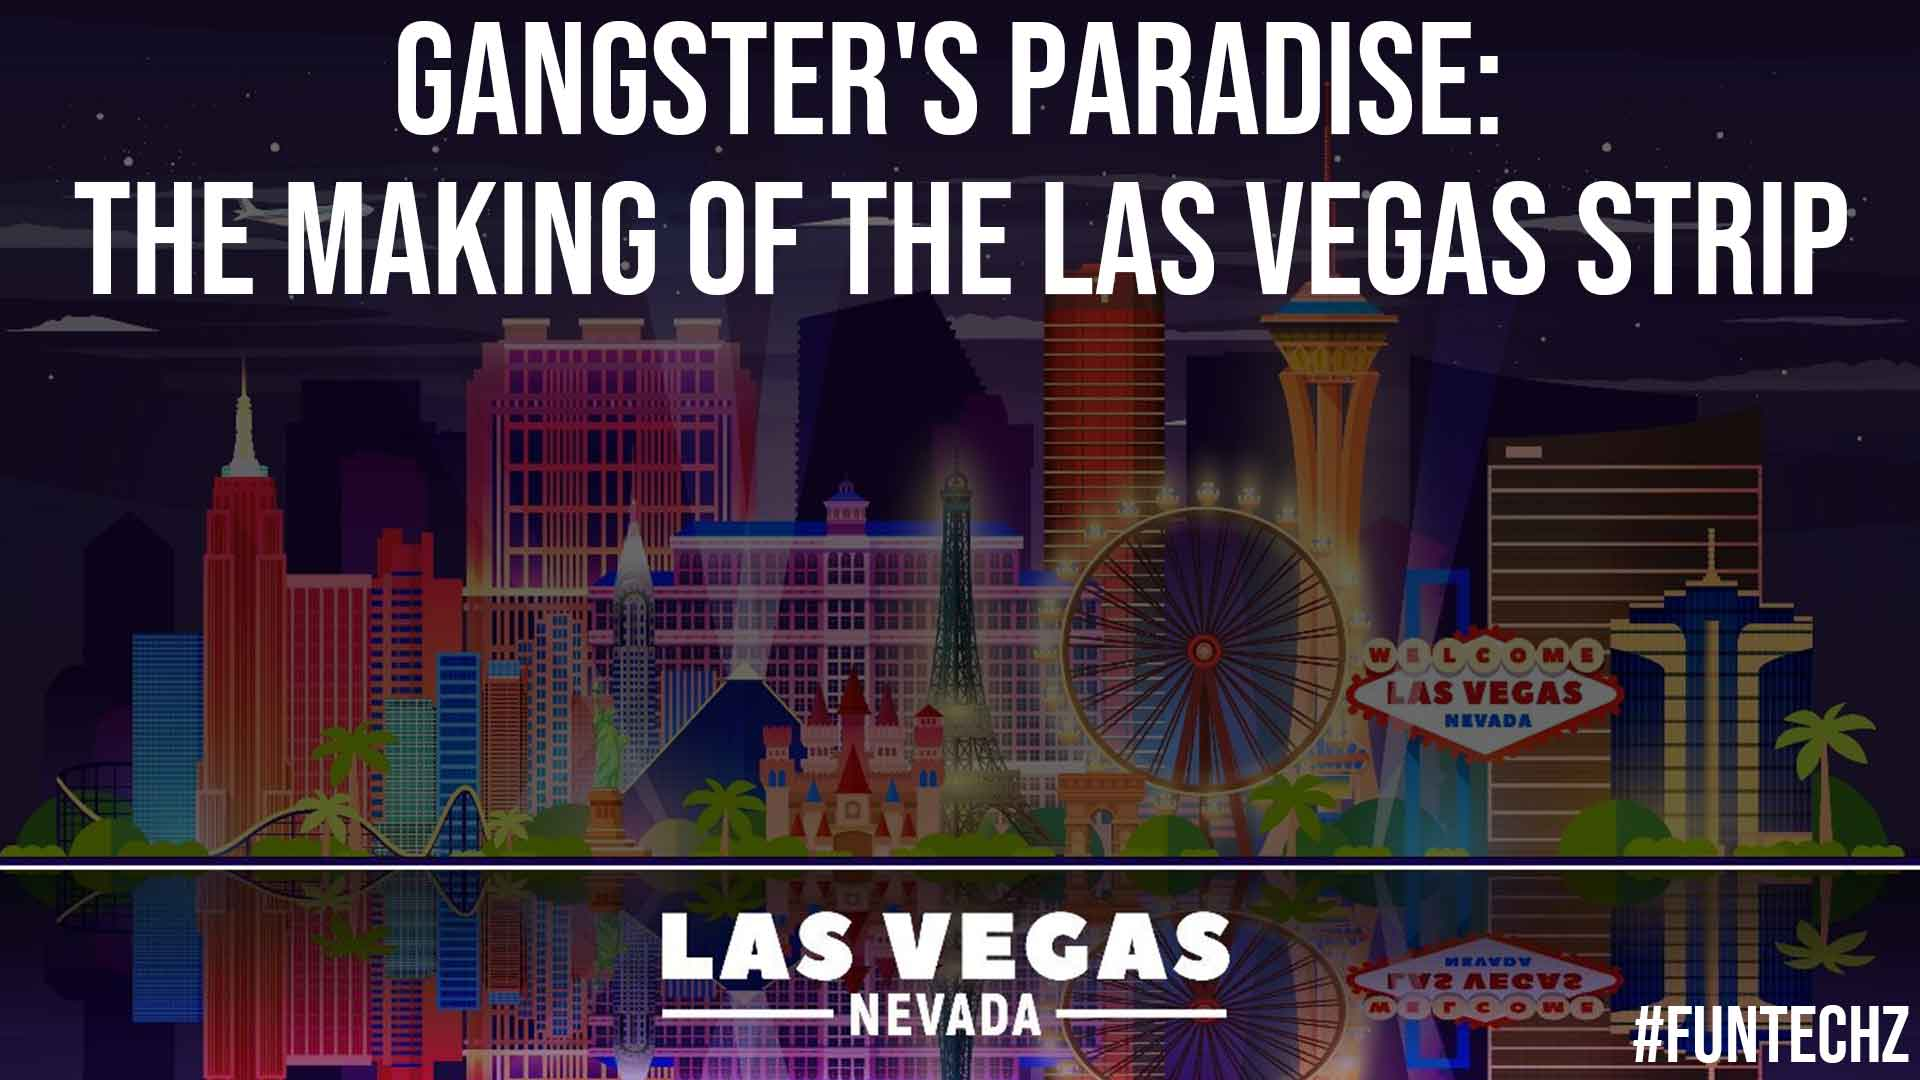 Gangsters Paradise The Making of the Las Vegas Strip